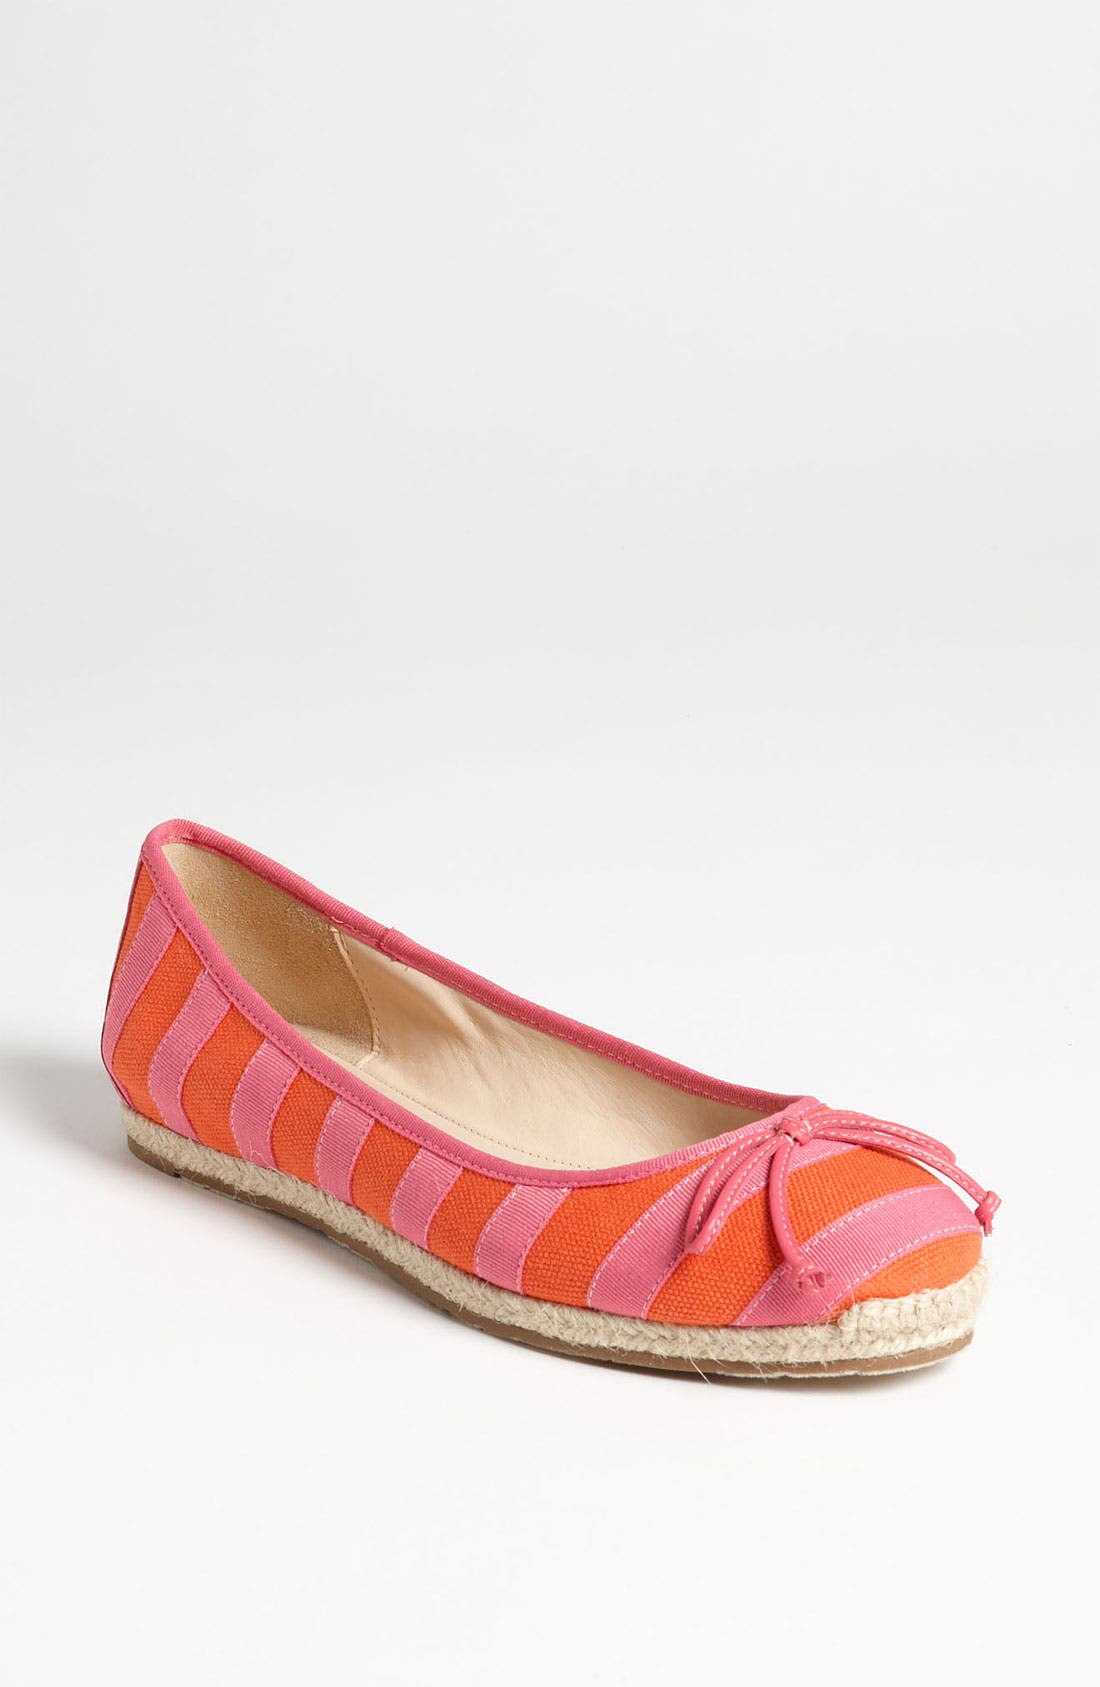 Alternate Image 1 Selected - kate spade new york 'valley' flat